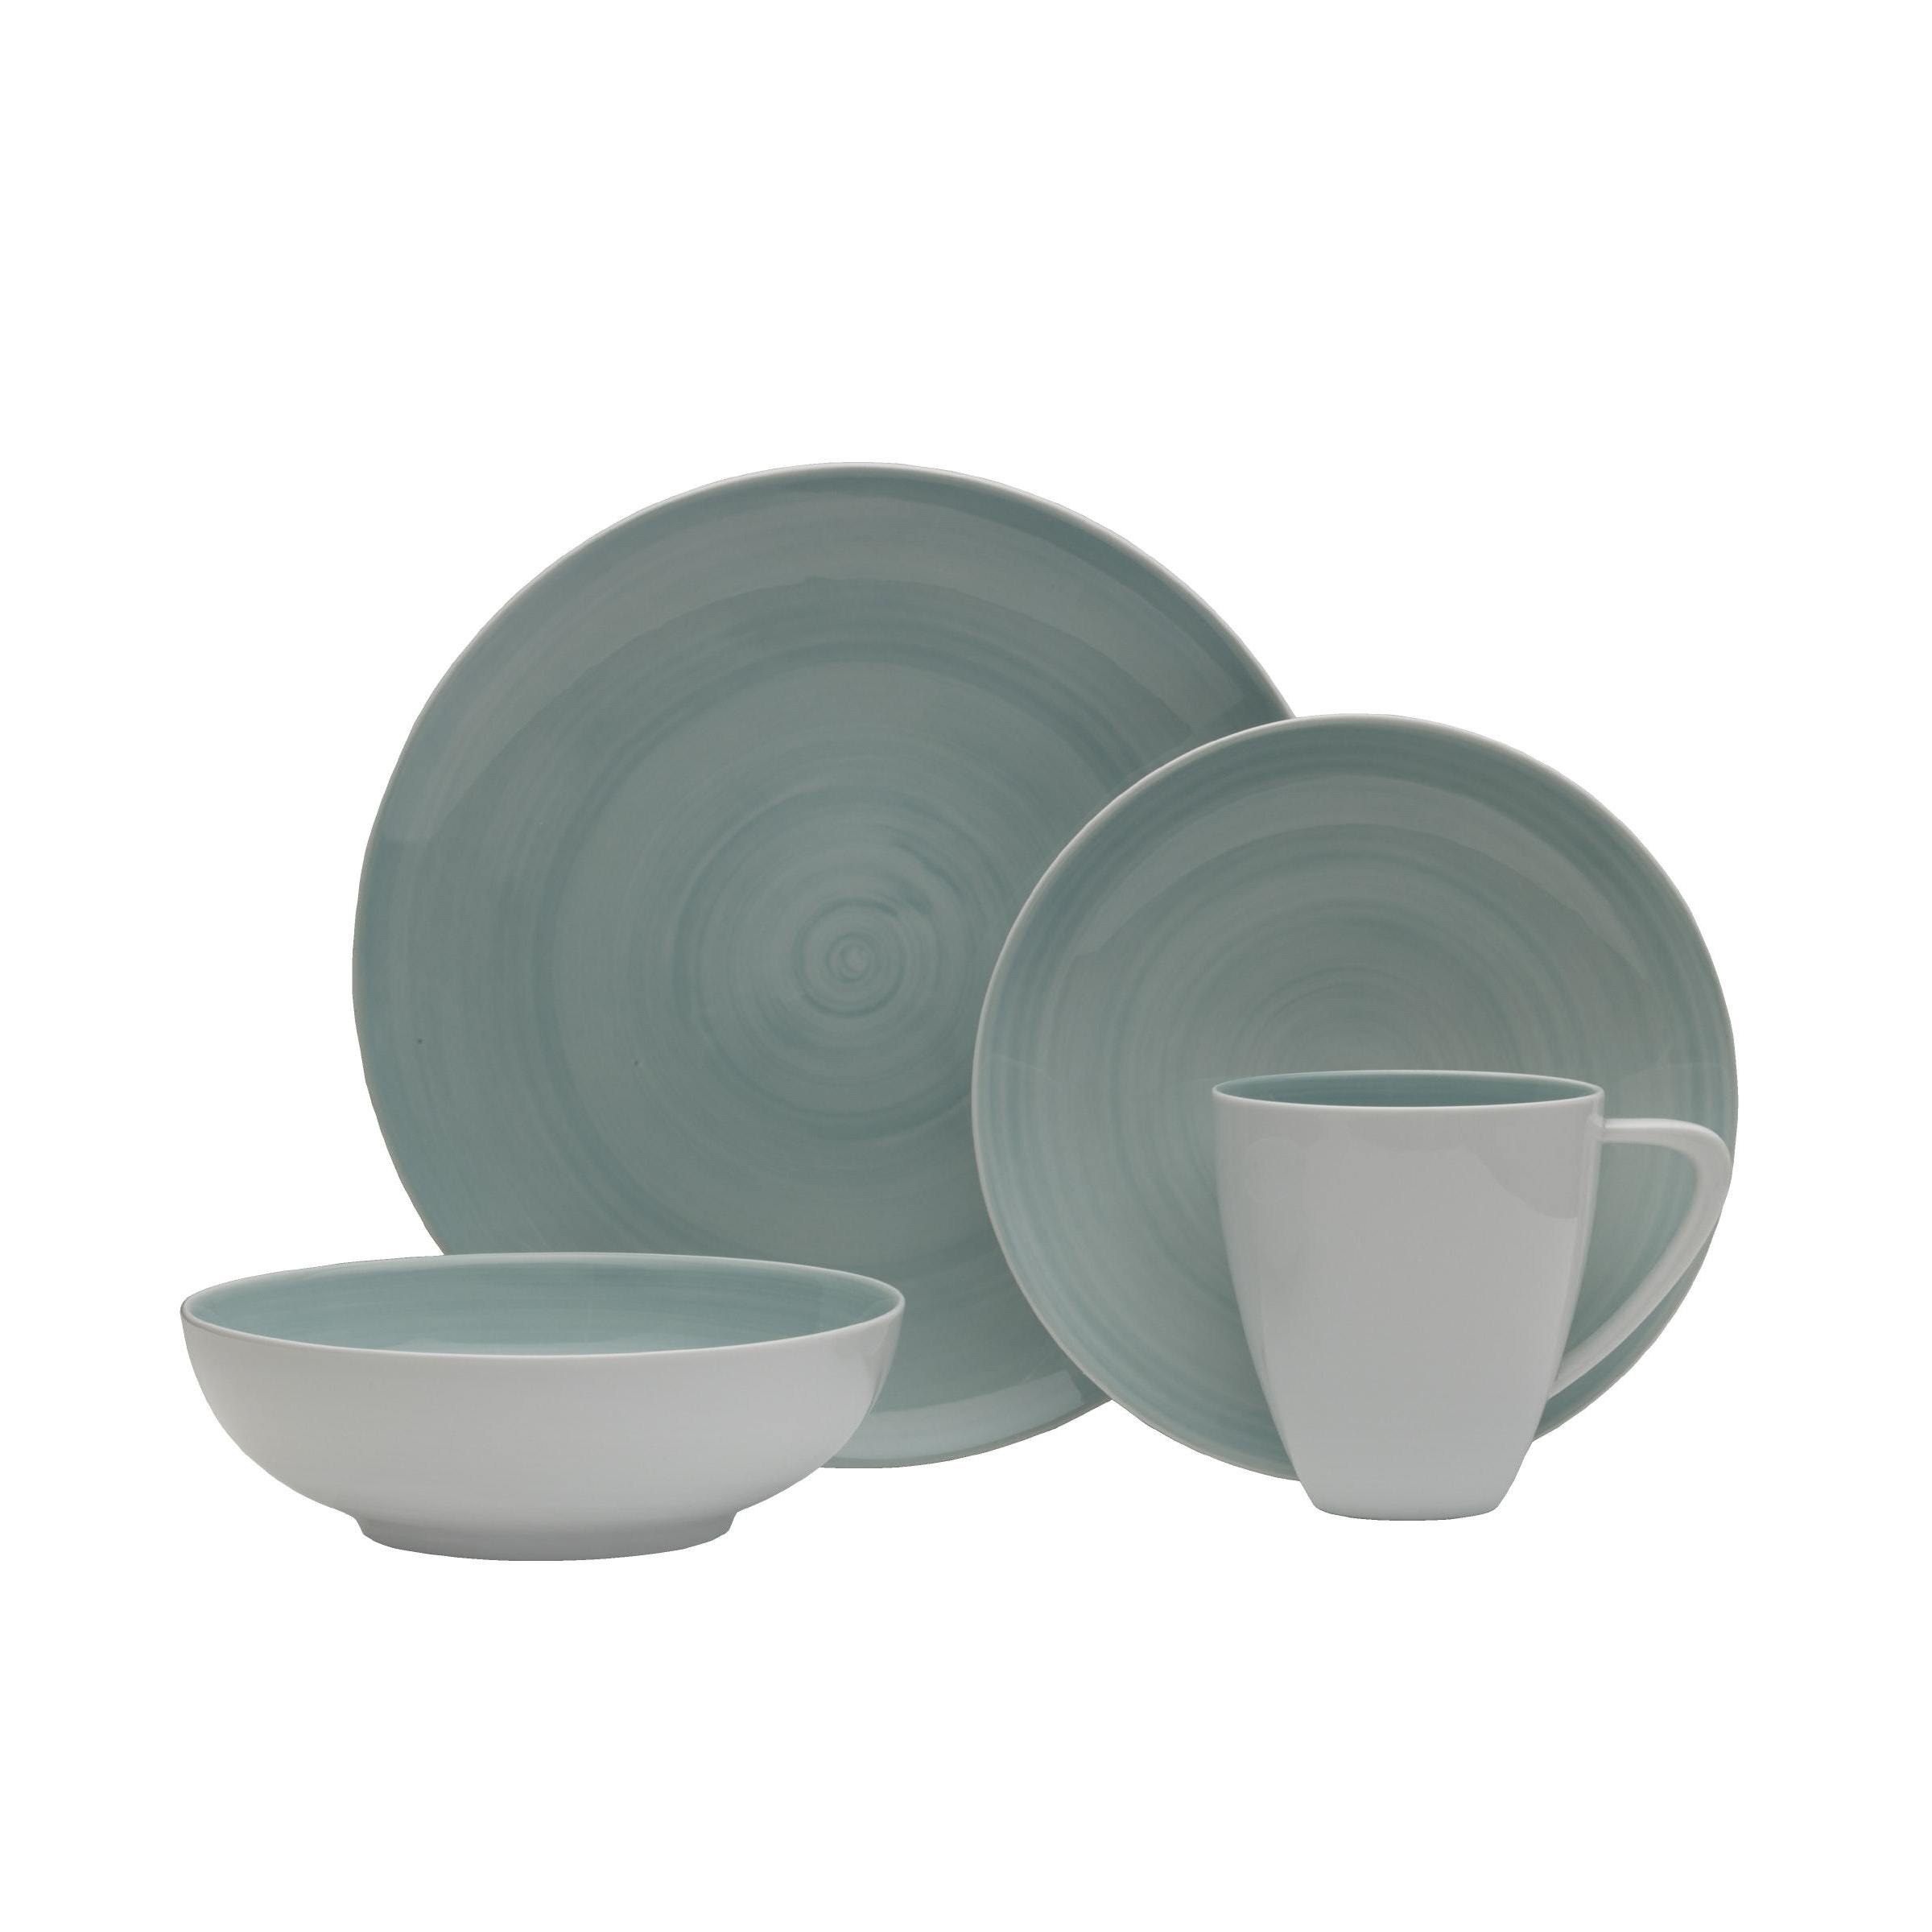 Savona 16pc Dinnerware Set Porcelain Teal - Free Shipping Today - Overstock - 23351361  sc 1 st  Overstock.com & Savona 16pc Dinnerware Set Porcelain Teal - Free Shipping Today ...